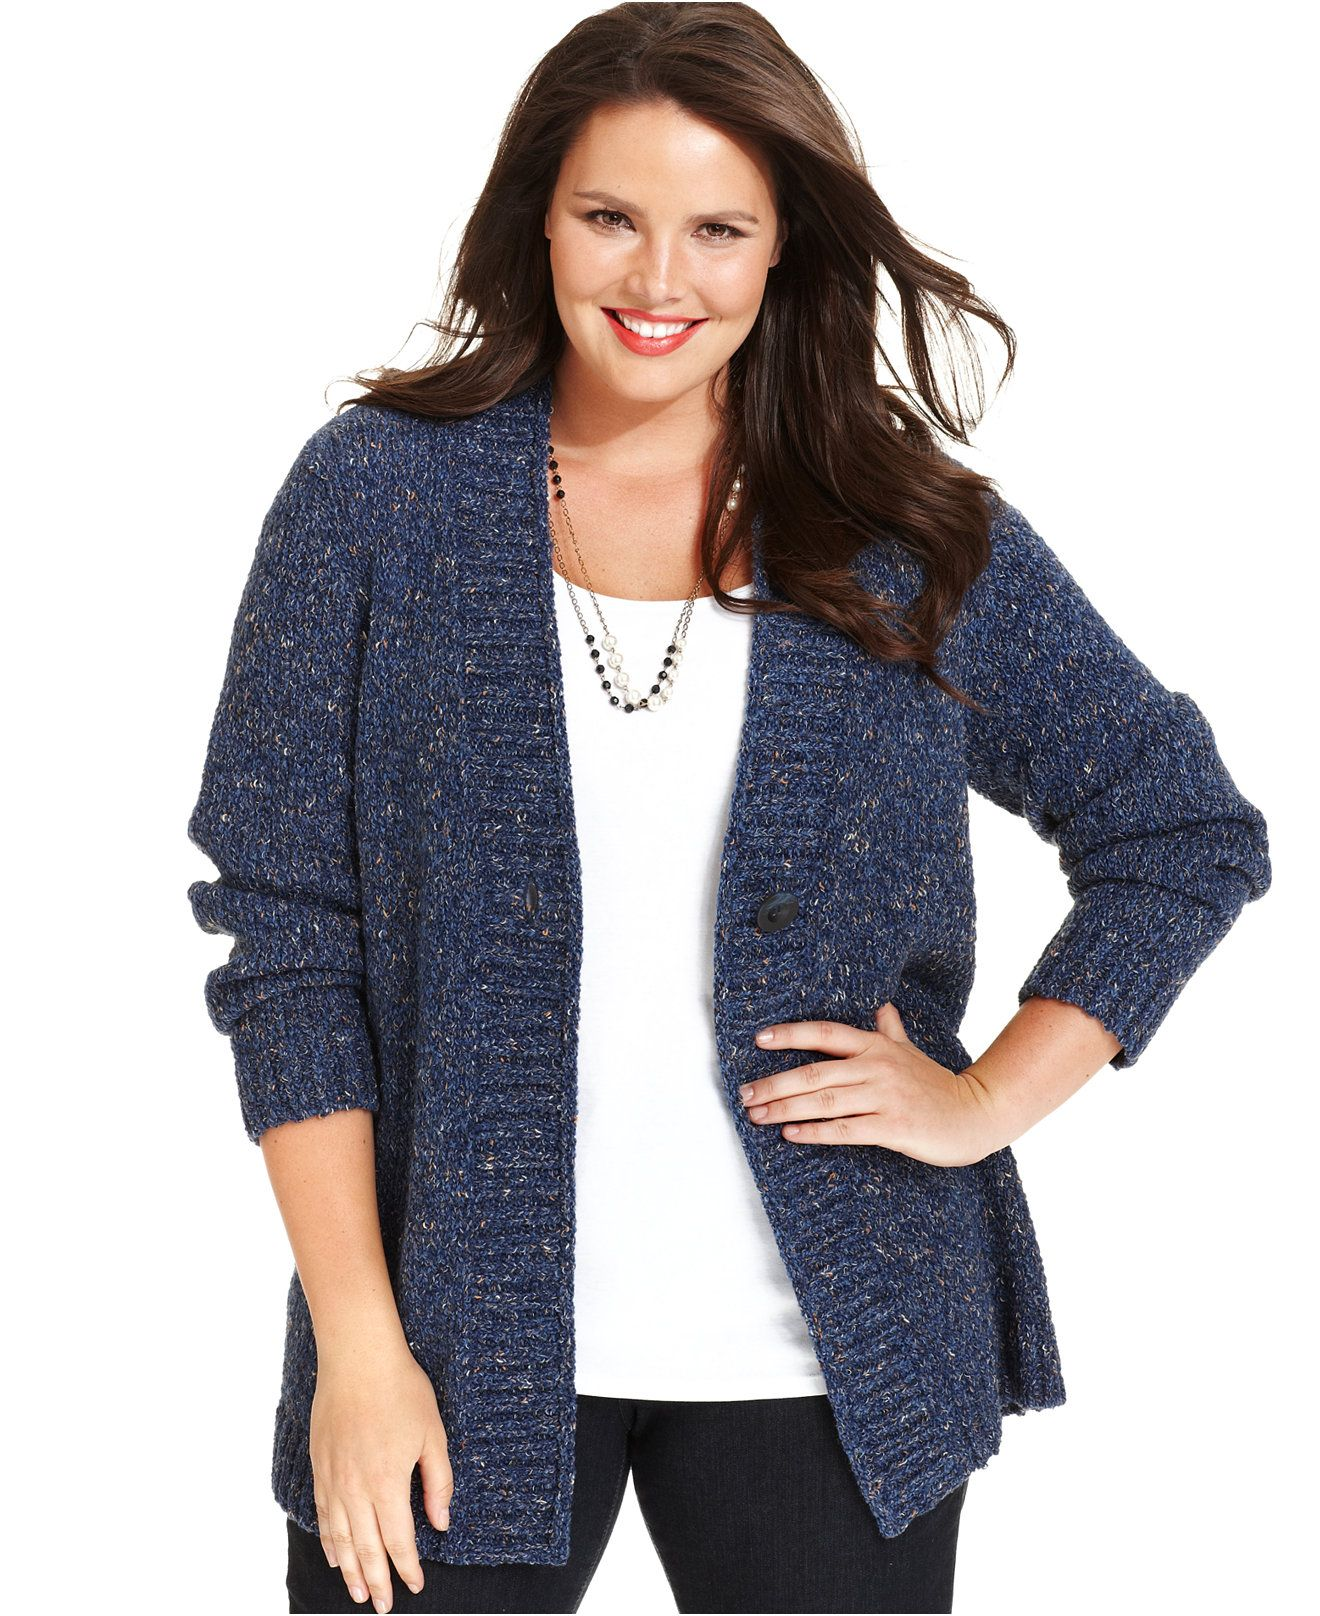 Charter Club Plus Size Fafa-Knit Sweaters - Sweaters - Plus Sizes - Macy's